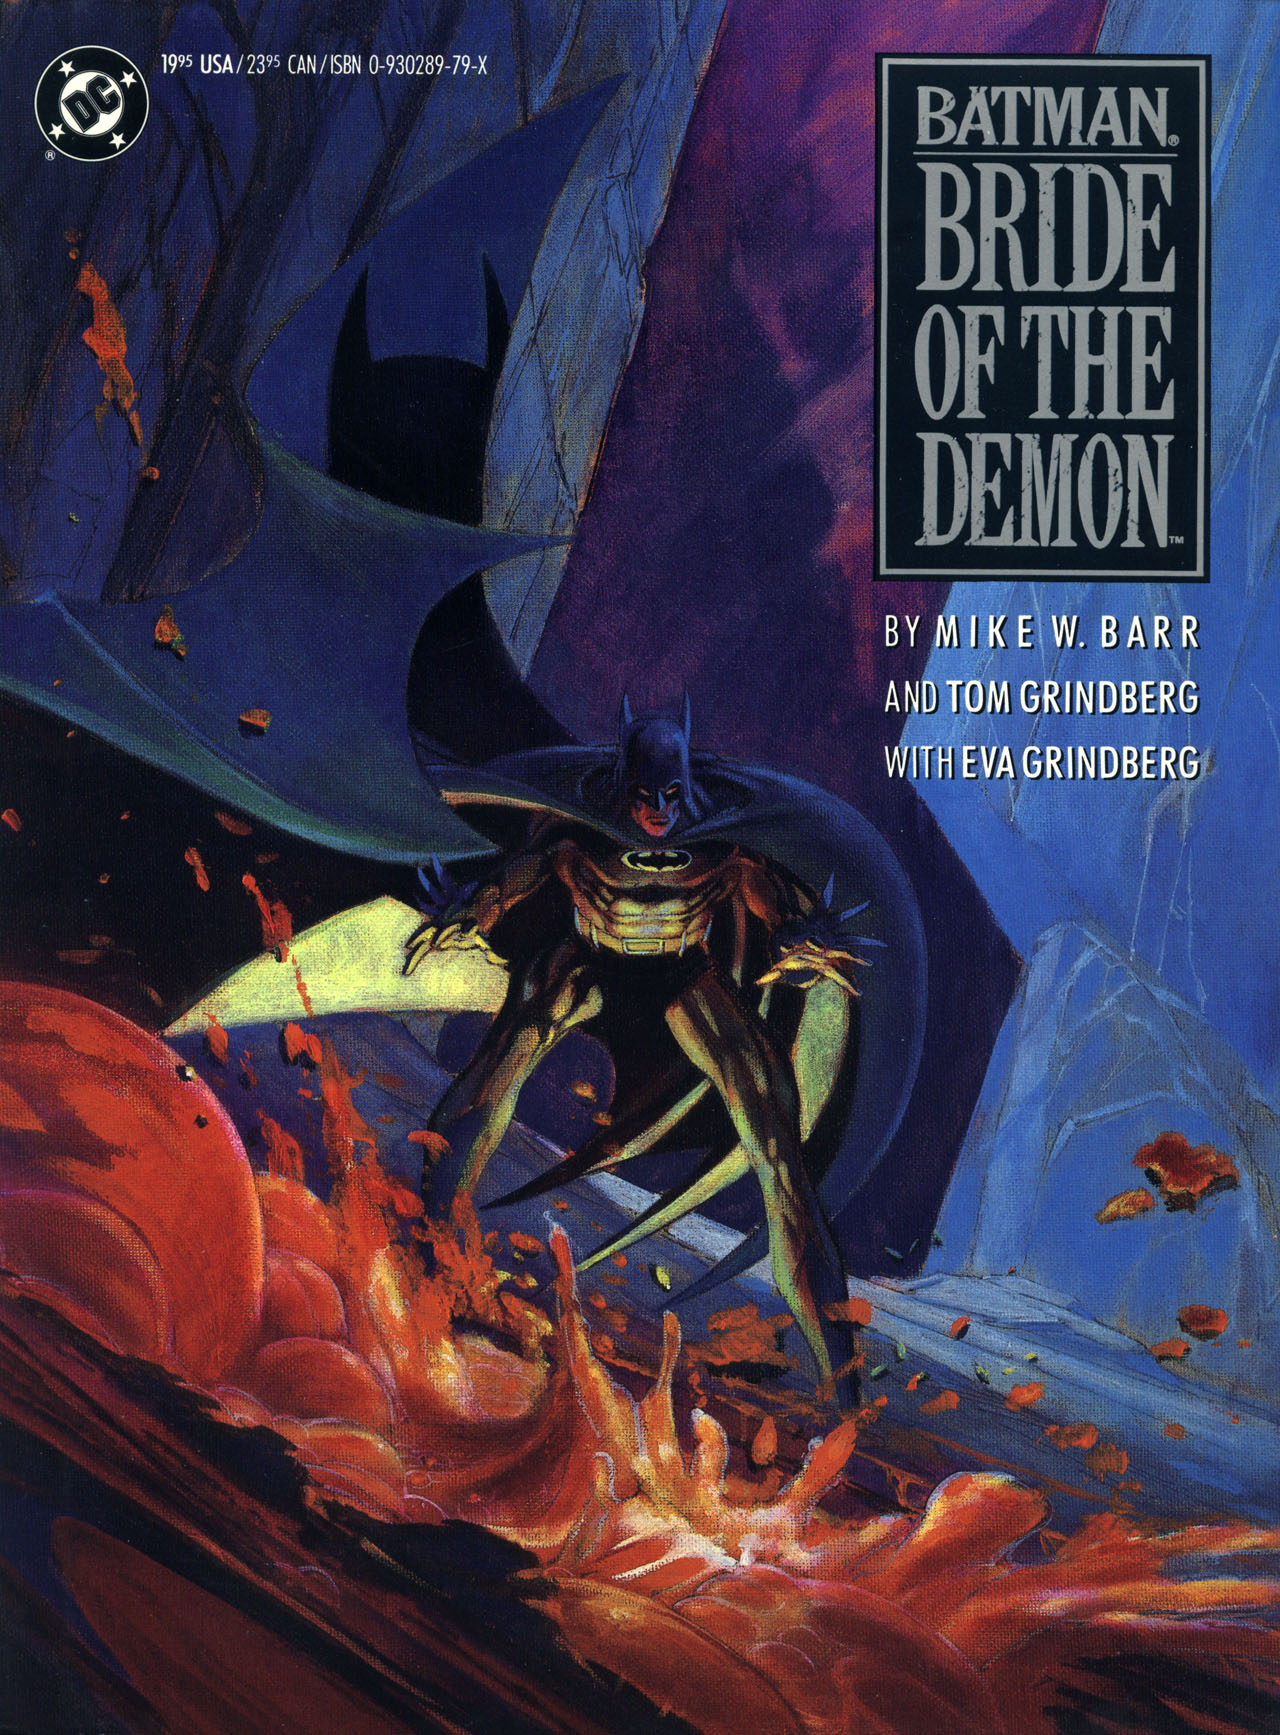 Batman: Bride of the Demon TPB Page 1